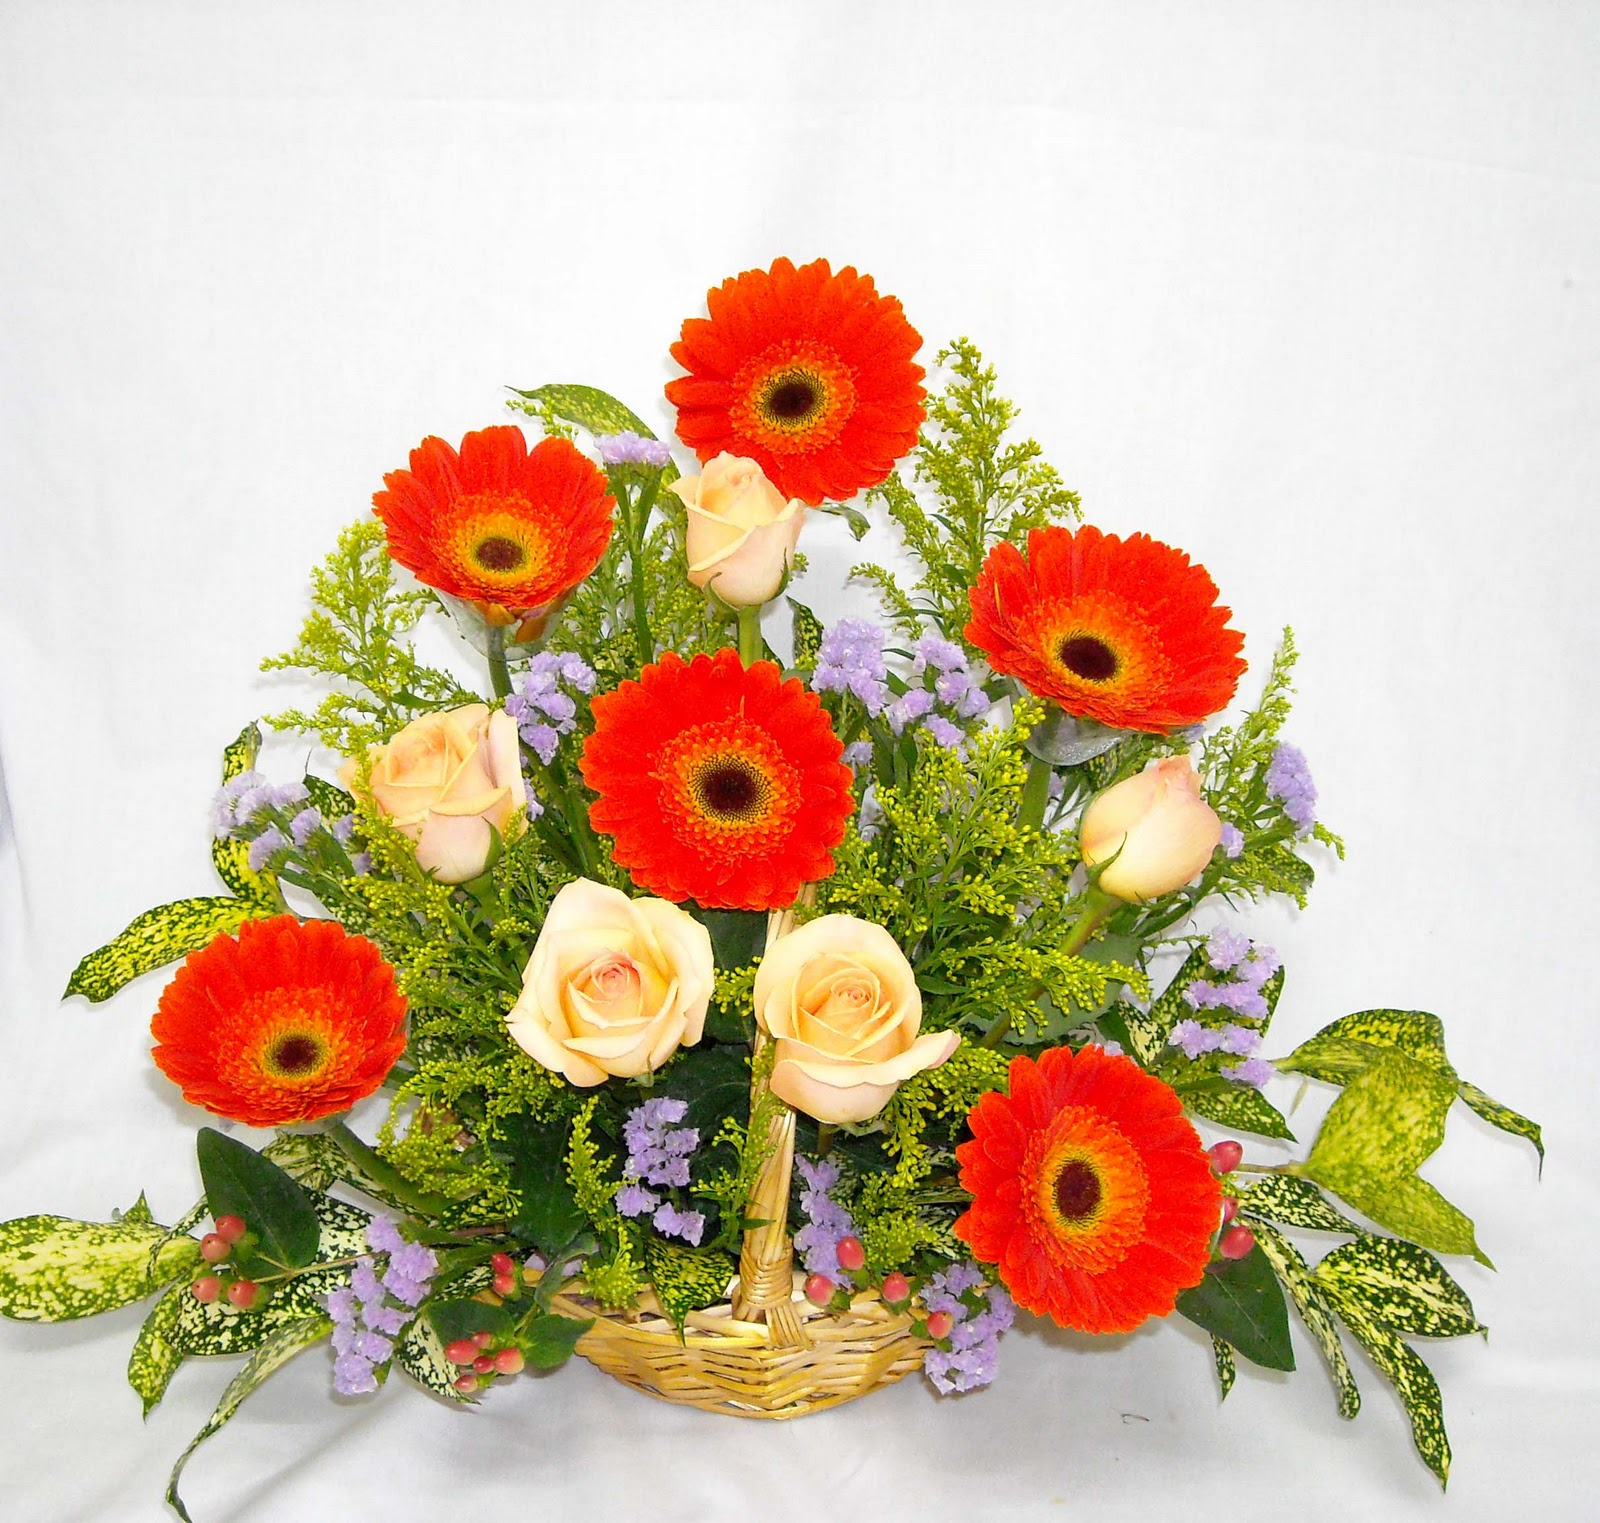 Images Of Flower Baskets : Pretty pompoms florist flower basket